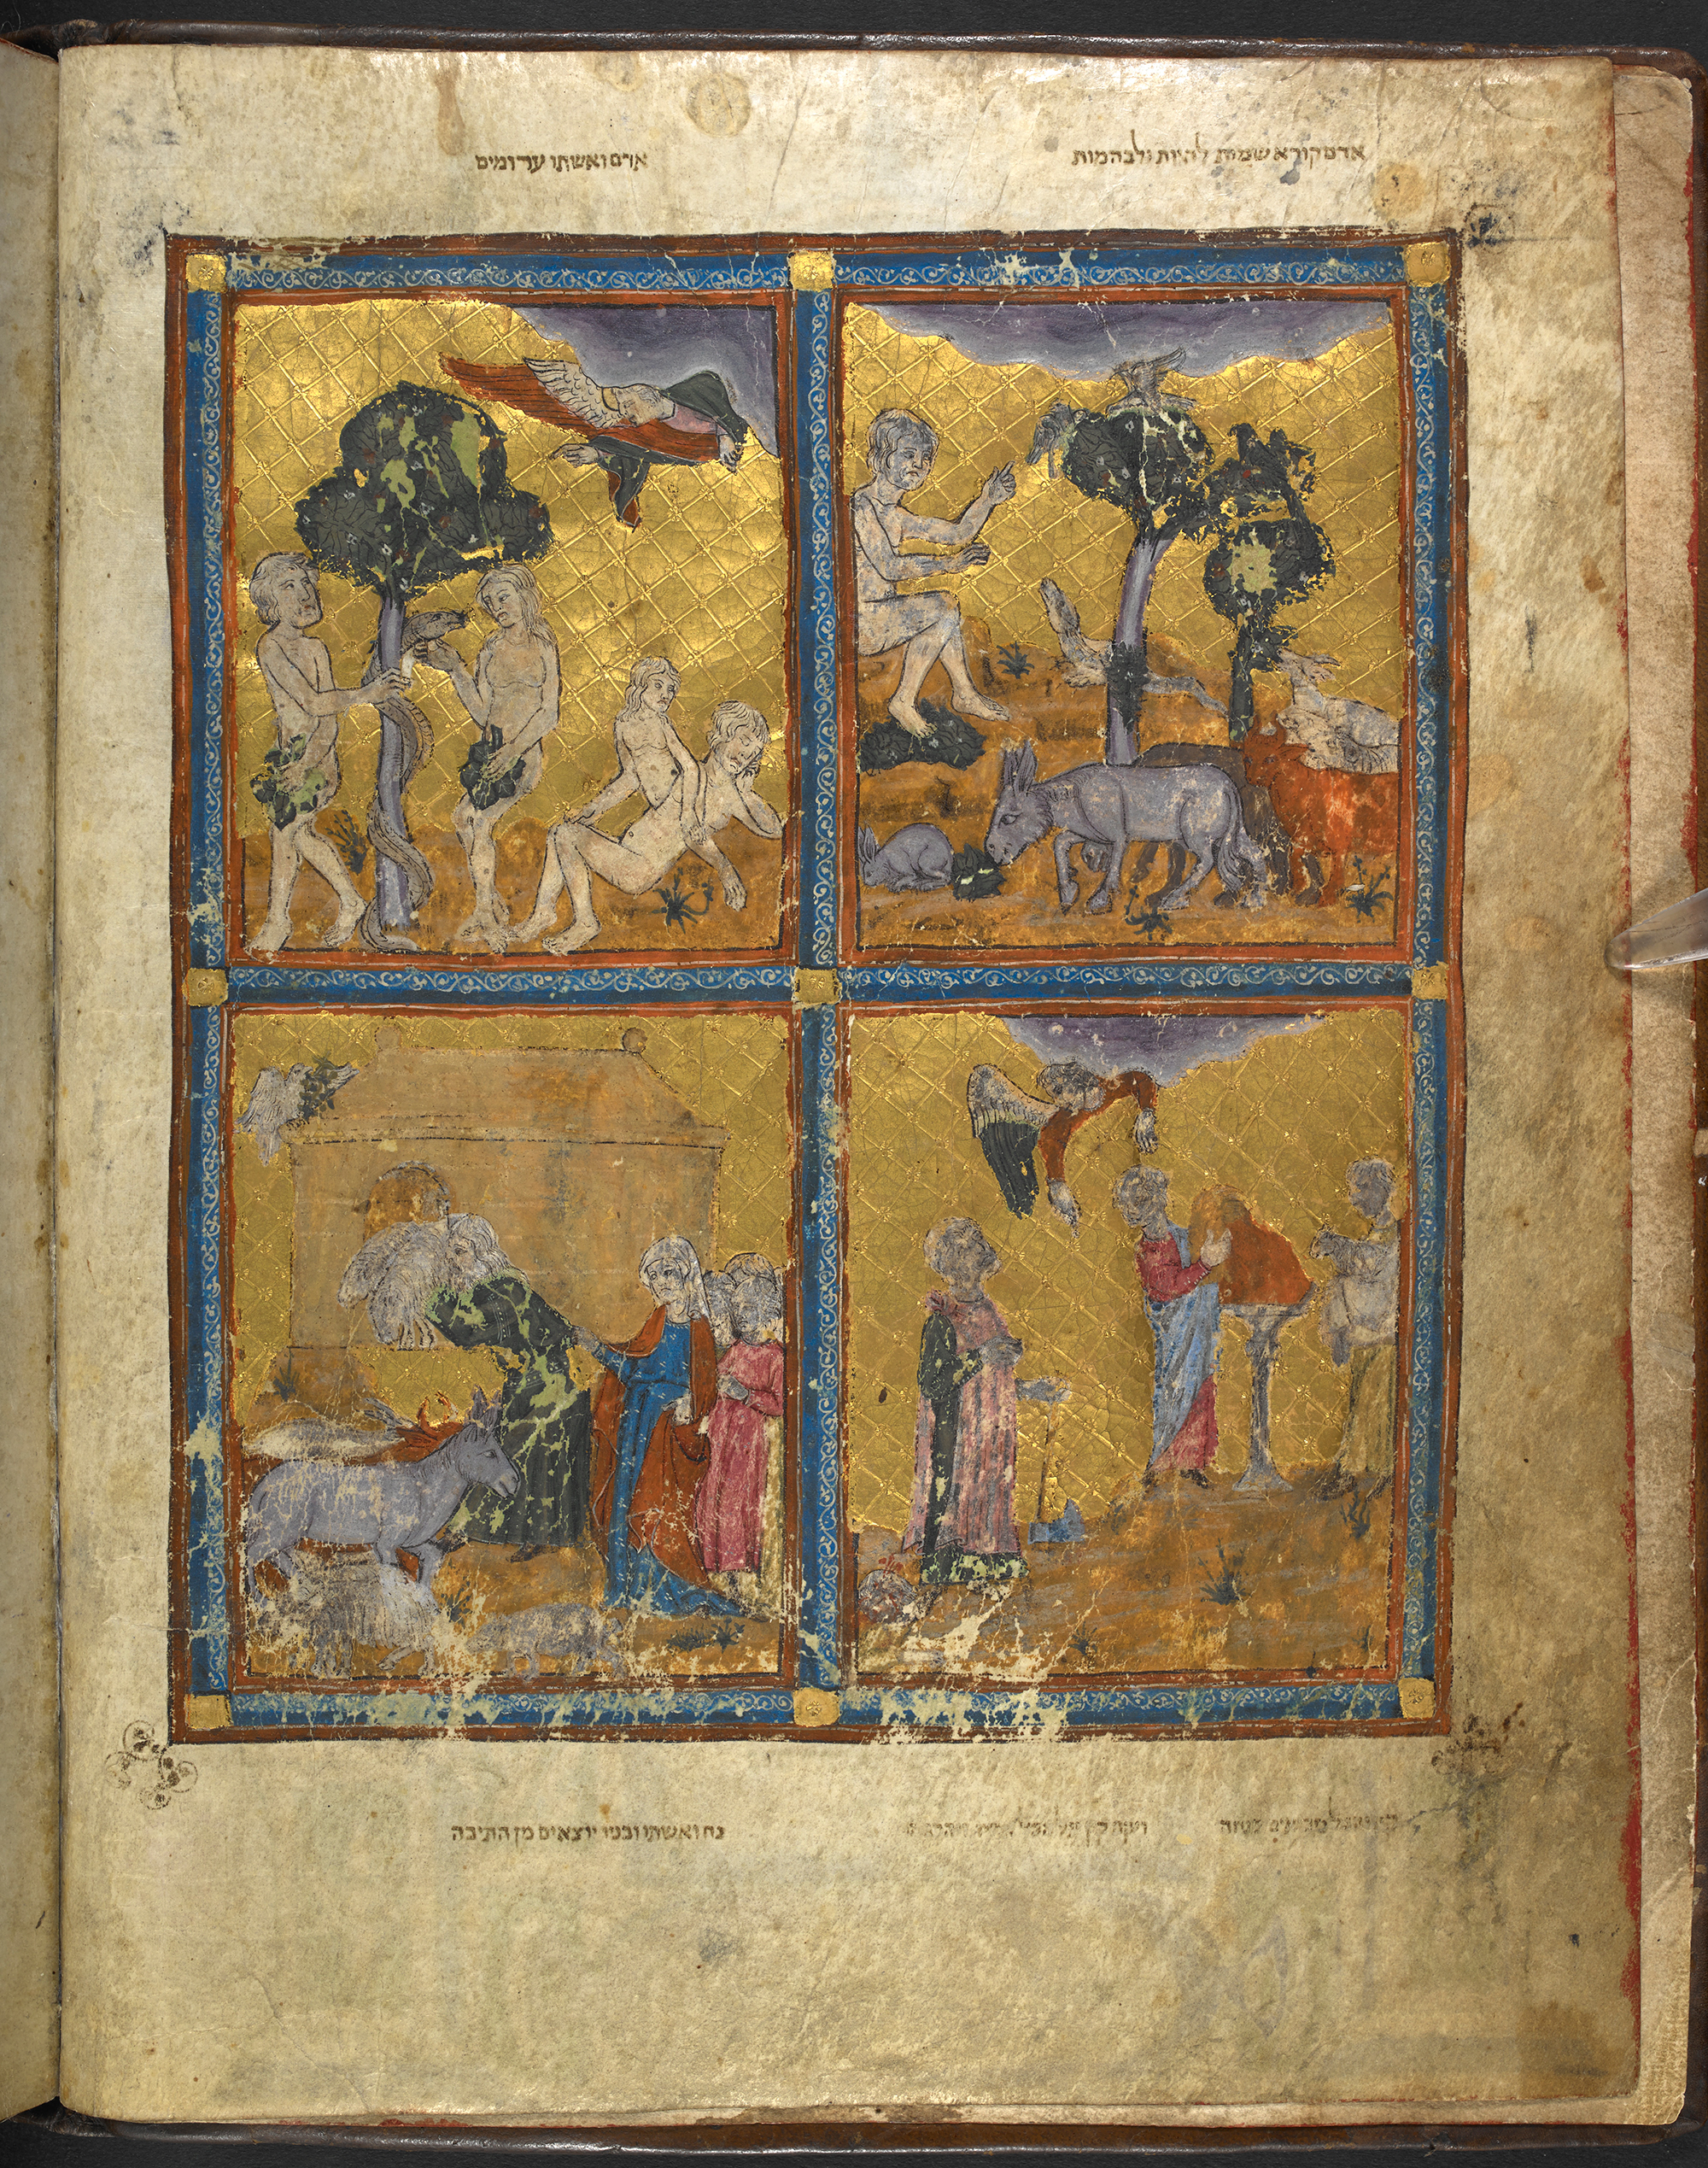 Images from the Book of Genesis in the Golden Haggadah, Catalonia, c. 1320 CE, The Golden Haggadah, Add MS 27210, Hebrew Manuscripts Digitisation Project, British Library